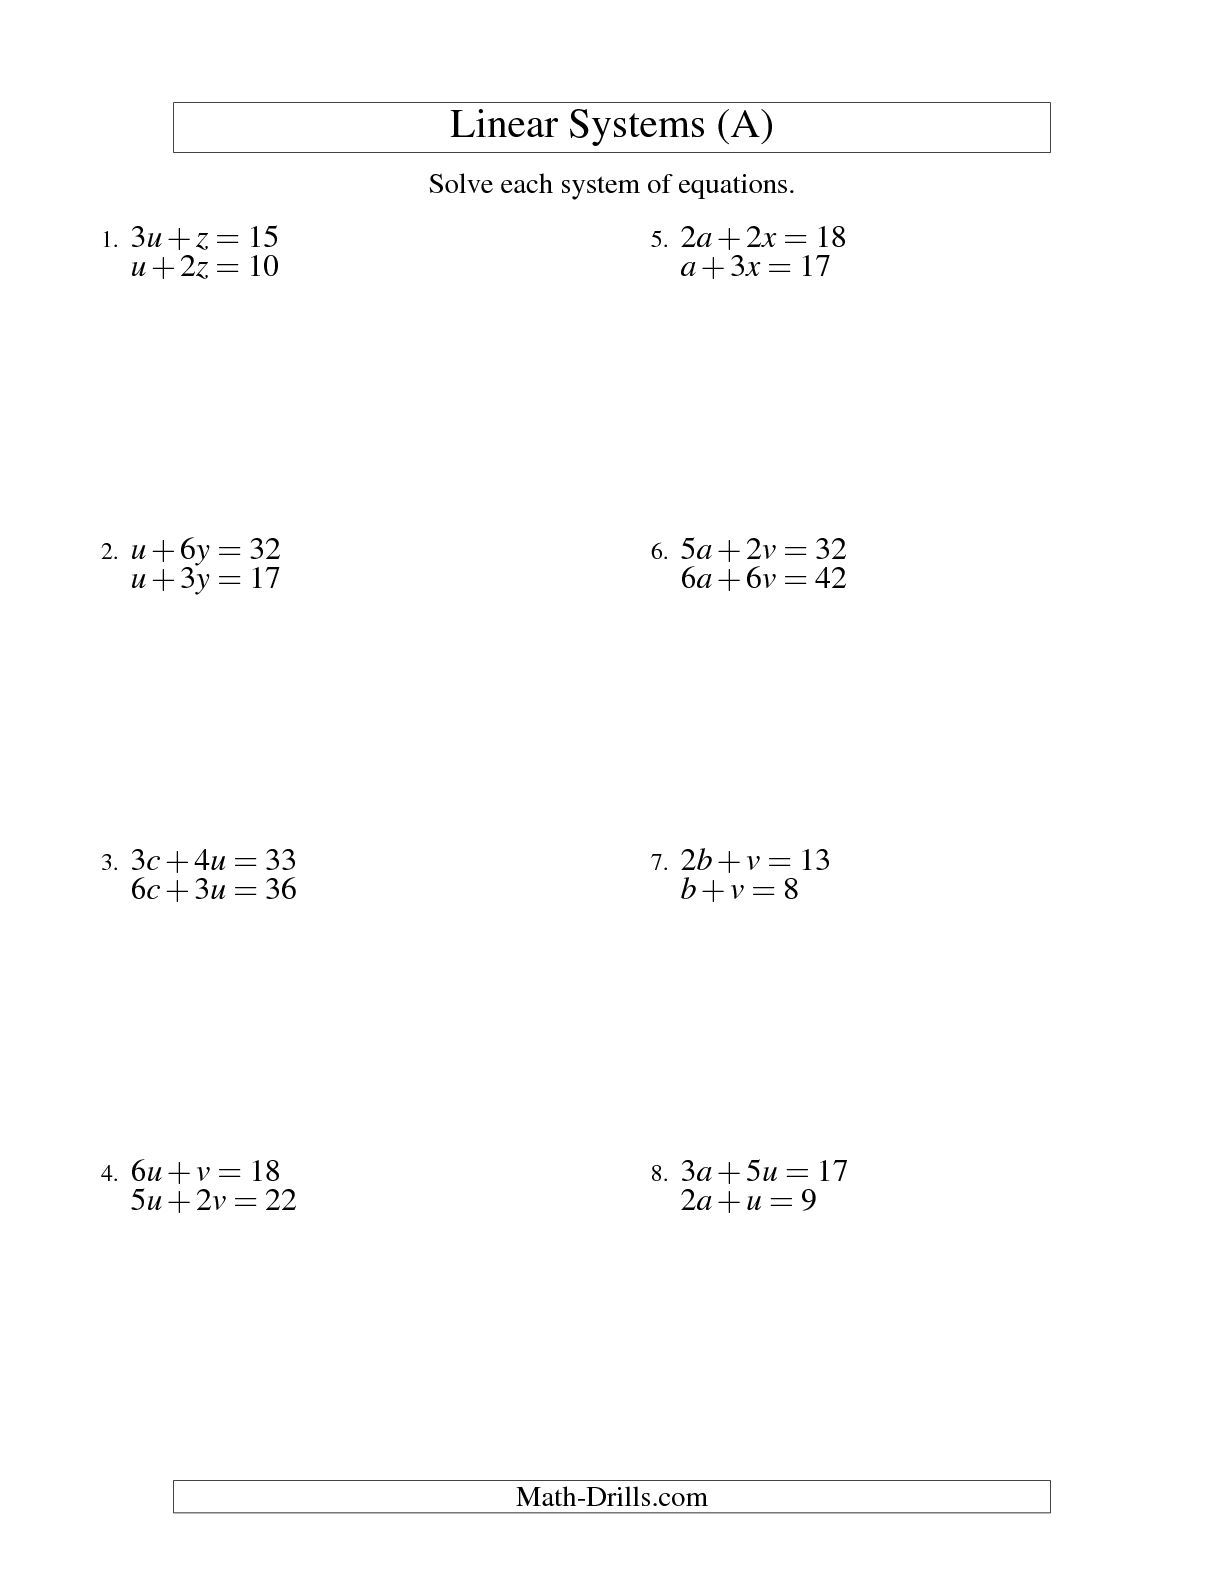 The Systems Of Linear Equations -- Two Variables (A) Math